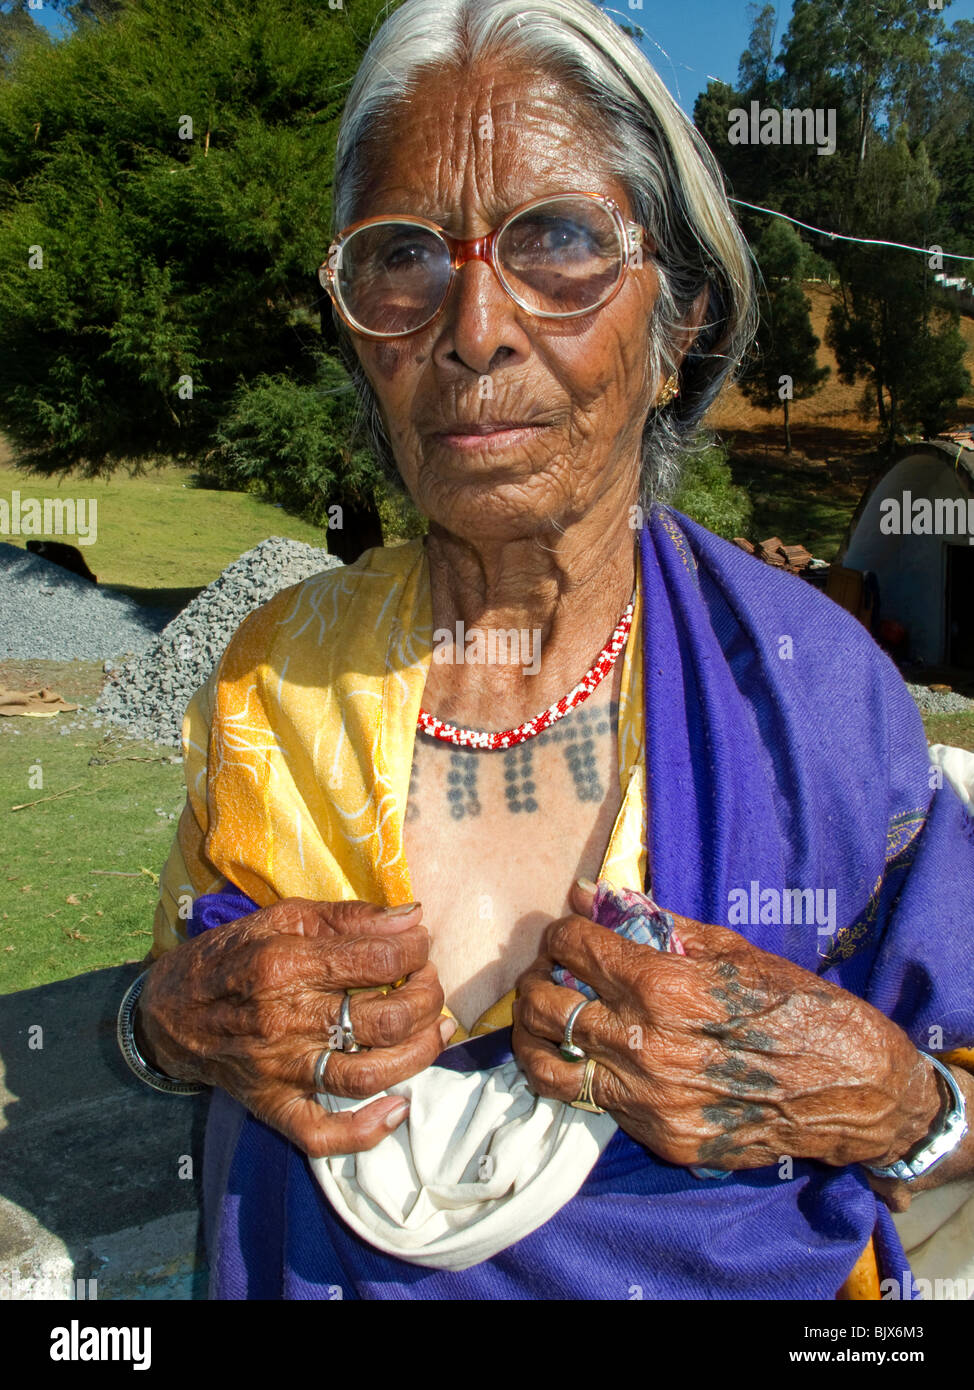 India, <b>Tamil Nadu</b>, Udhagamandalam (Ooty), Toda tribal woman displaying ... - india-tamil-nadu-udhagamandalam-ooty-toda-tribal-woman-displaying-BJX6M3